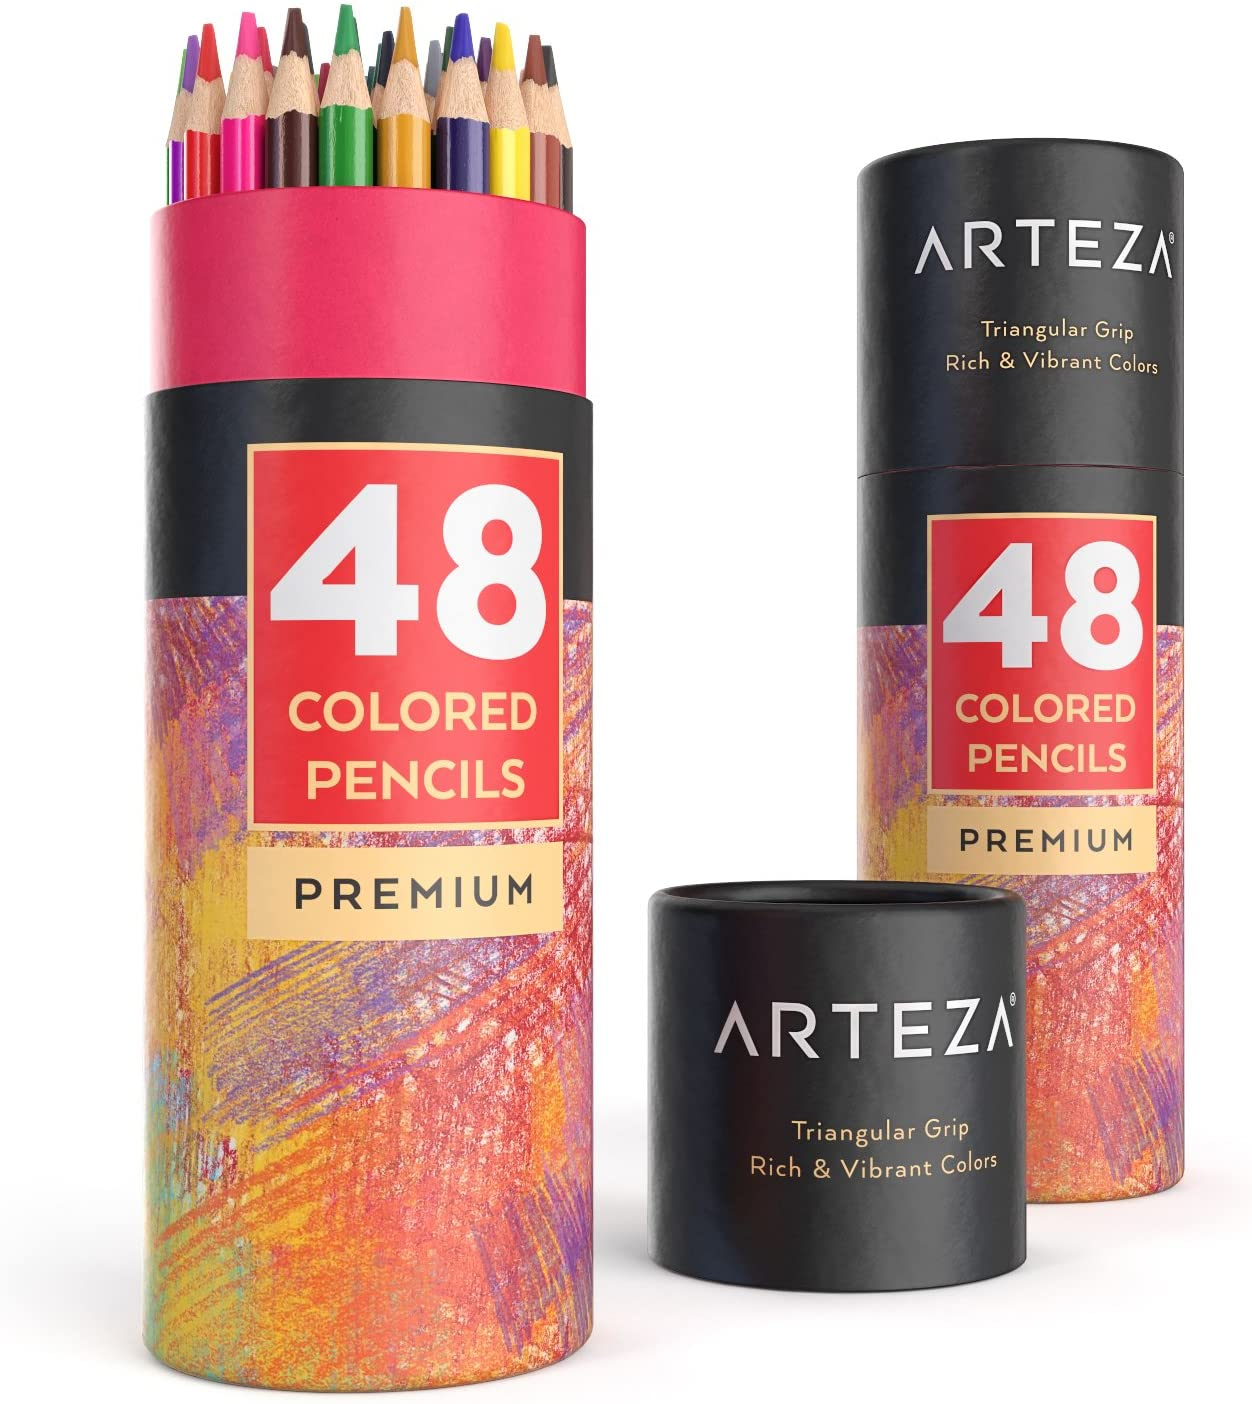 Arteza Colored Pencils, 48 Colors, Soft, Highly-Pigmented, Wax-Based Core Pencil Crayons, Art Supplies for Adults & Kids: Office Products